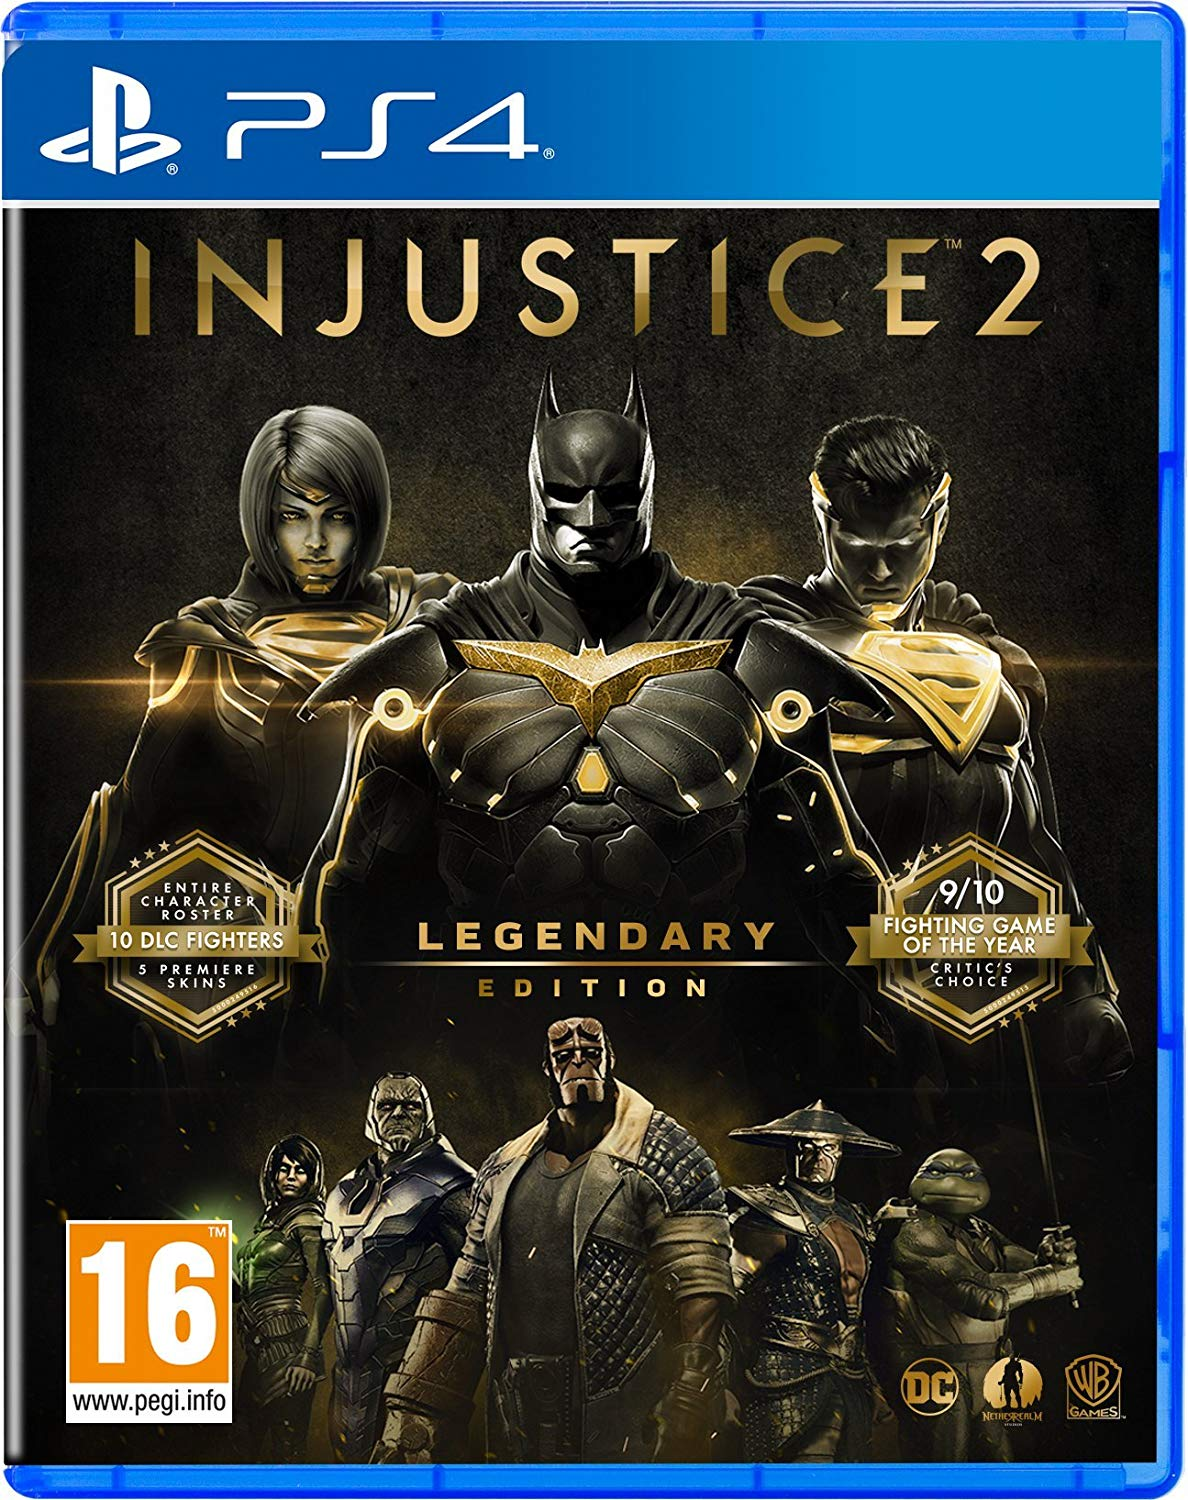 [PS4] Injustice 2 - Legendary Edition (OFW 4.55+) (2017) [ENG]